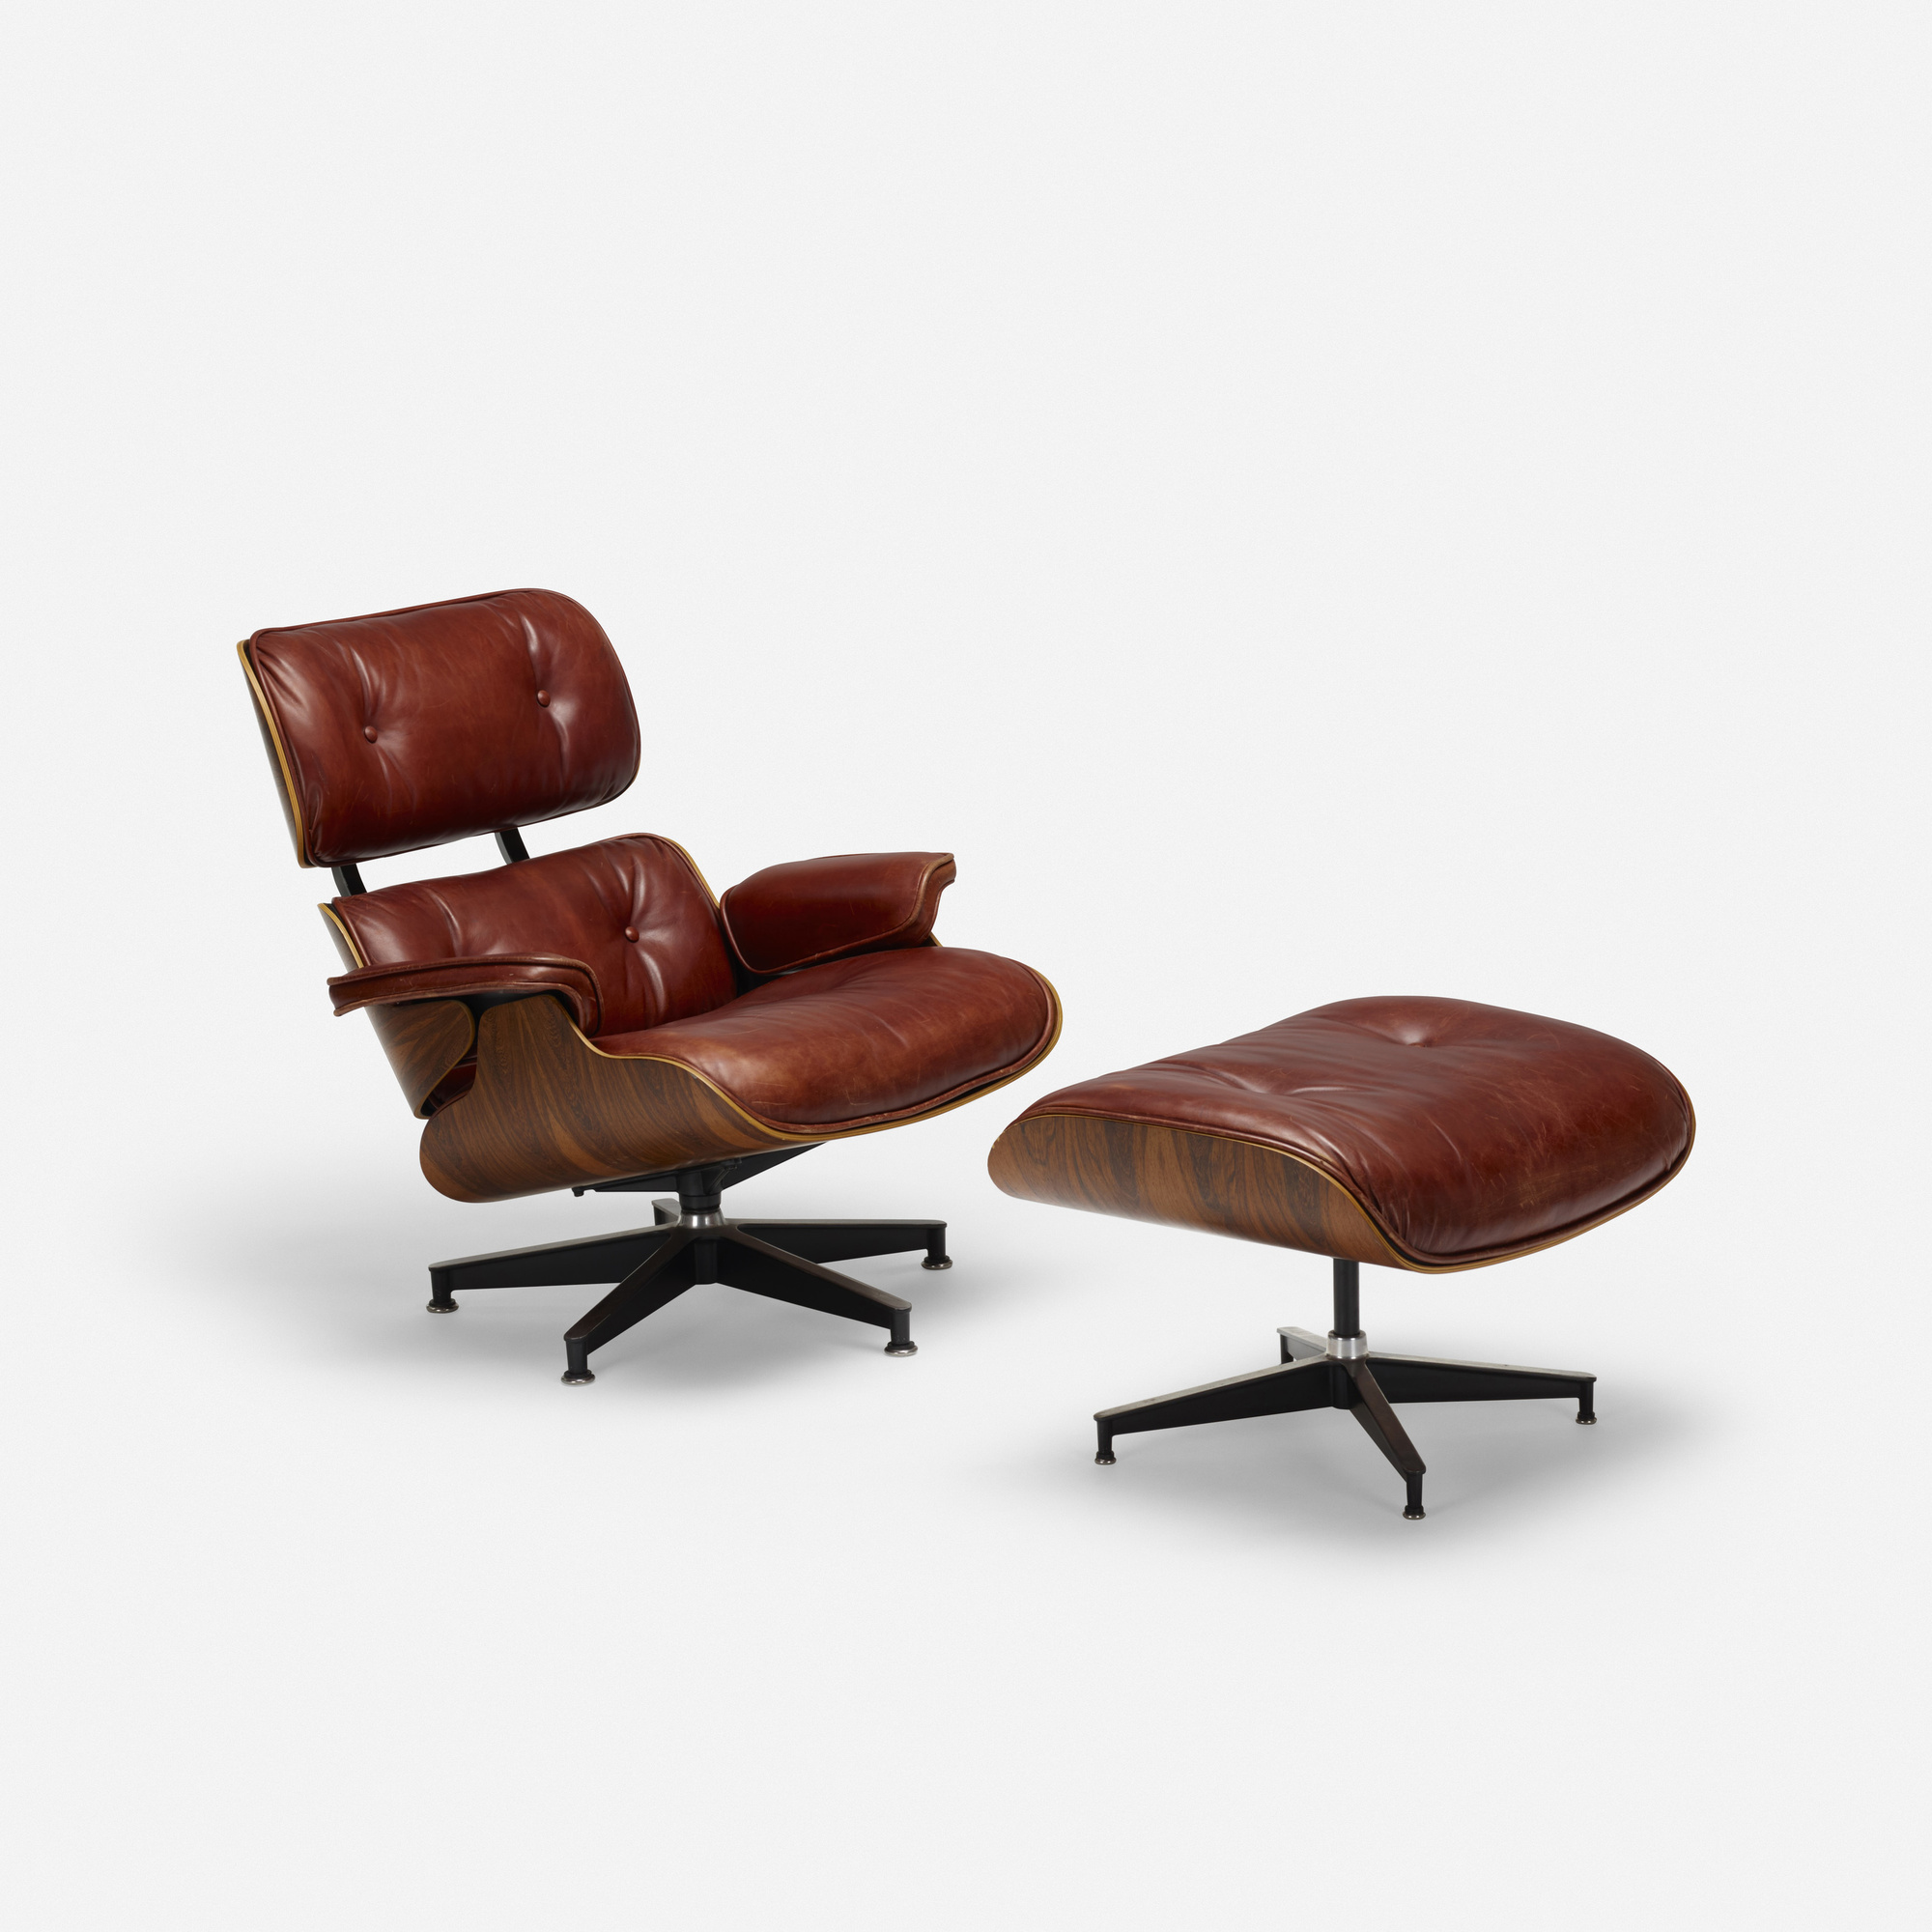 133 Charles And Ray Eames Special Order 670 Lounge Chair 671 Ottoman